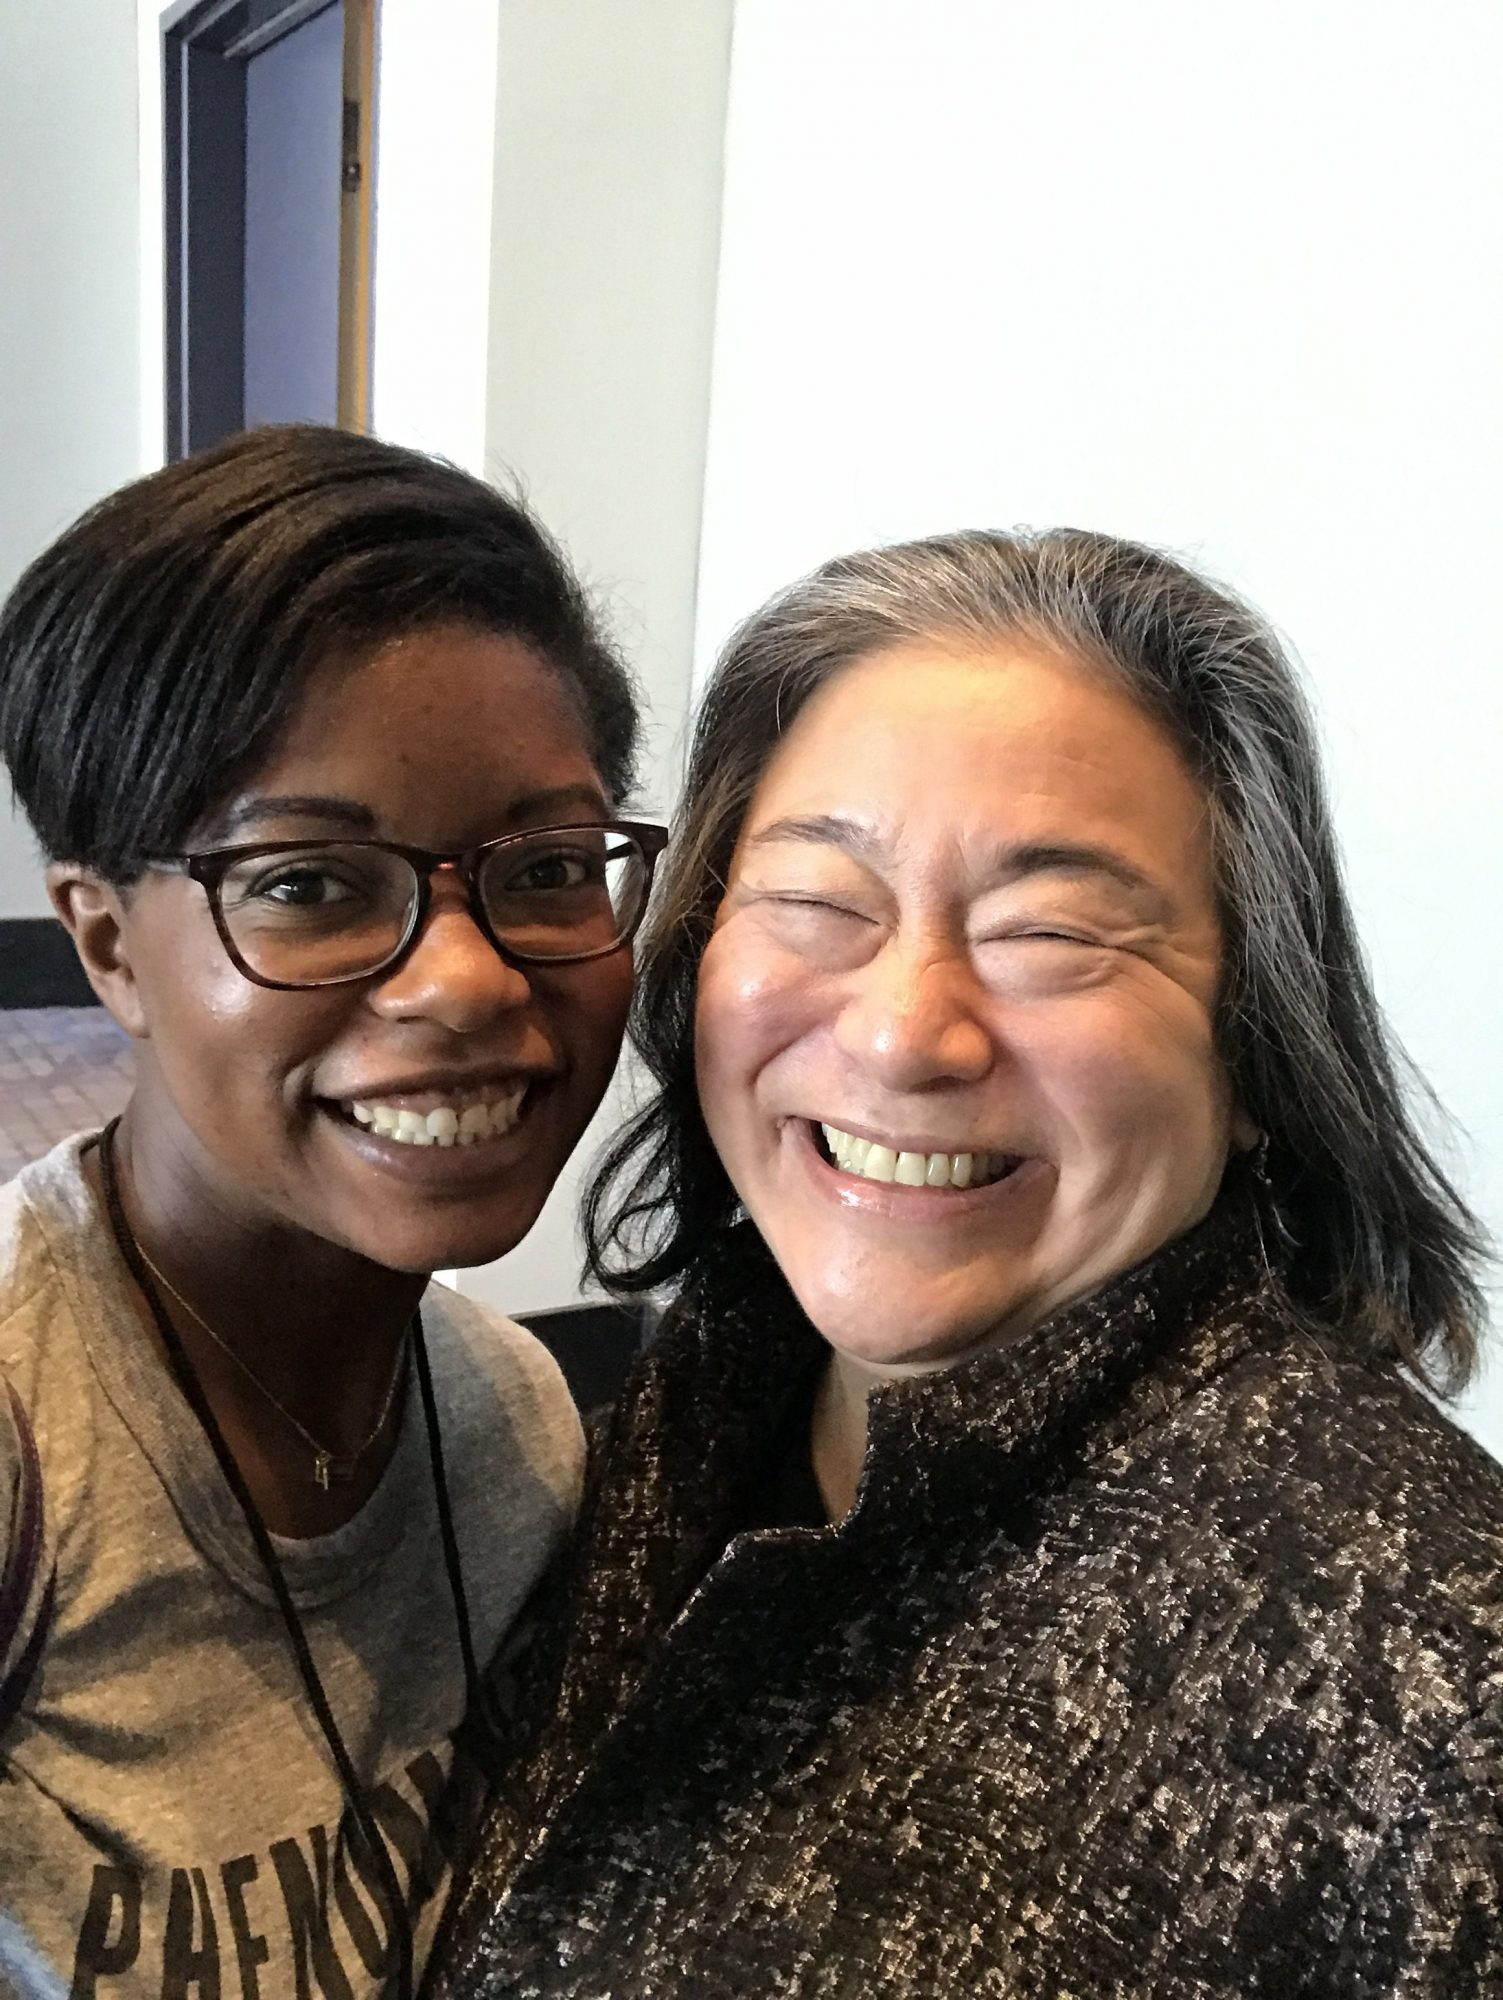 With Tina Tchen, former Executive Director of the White House Council on Women and Girls